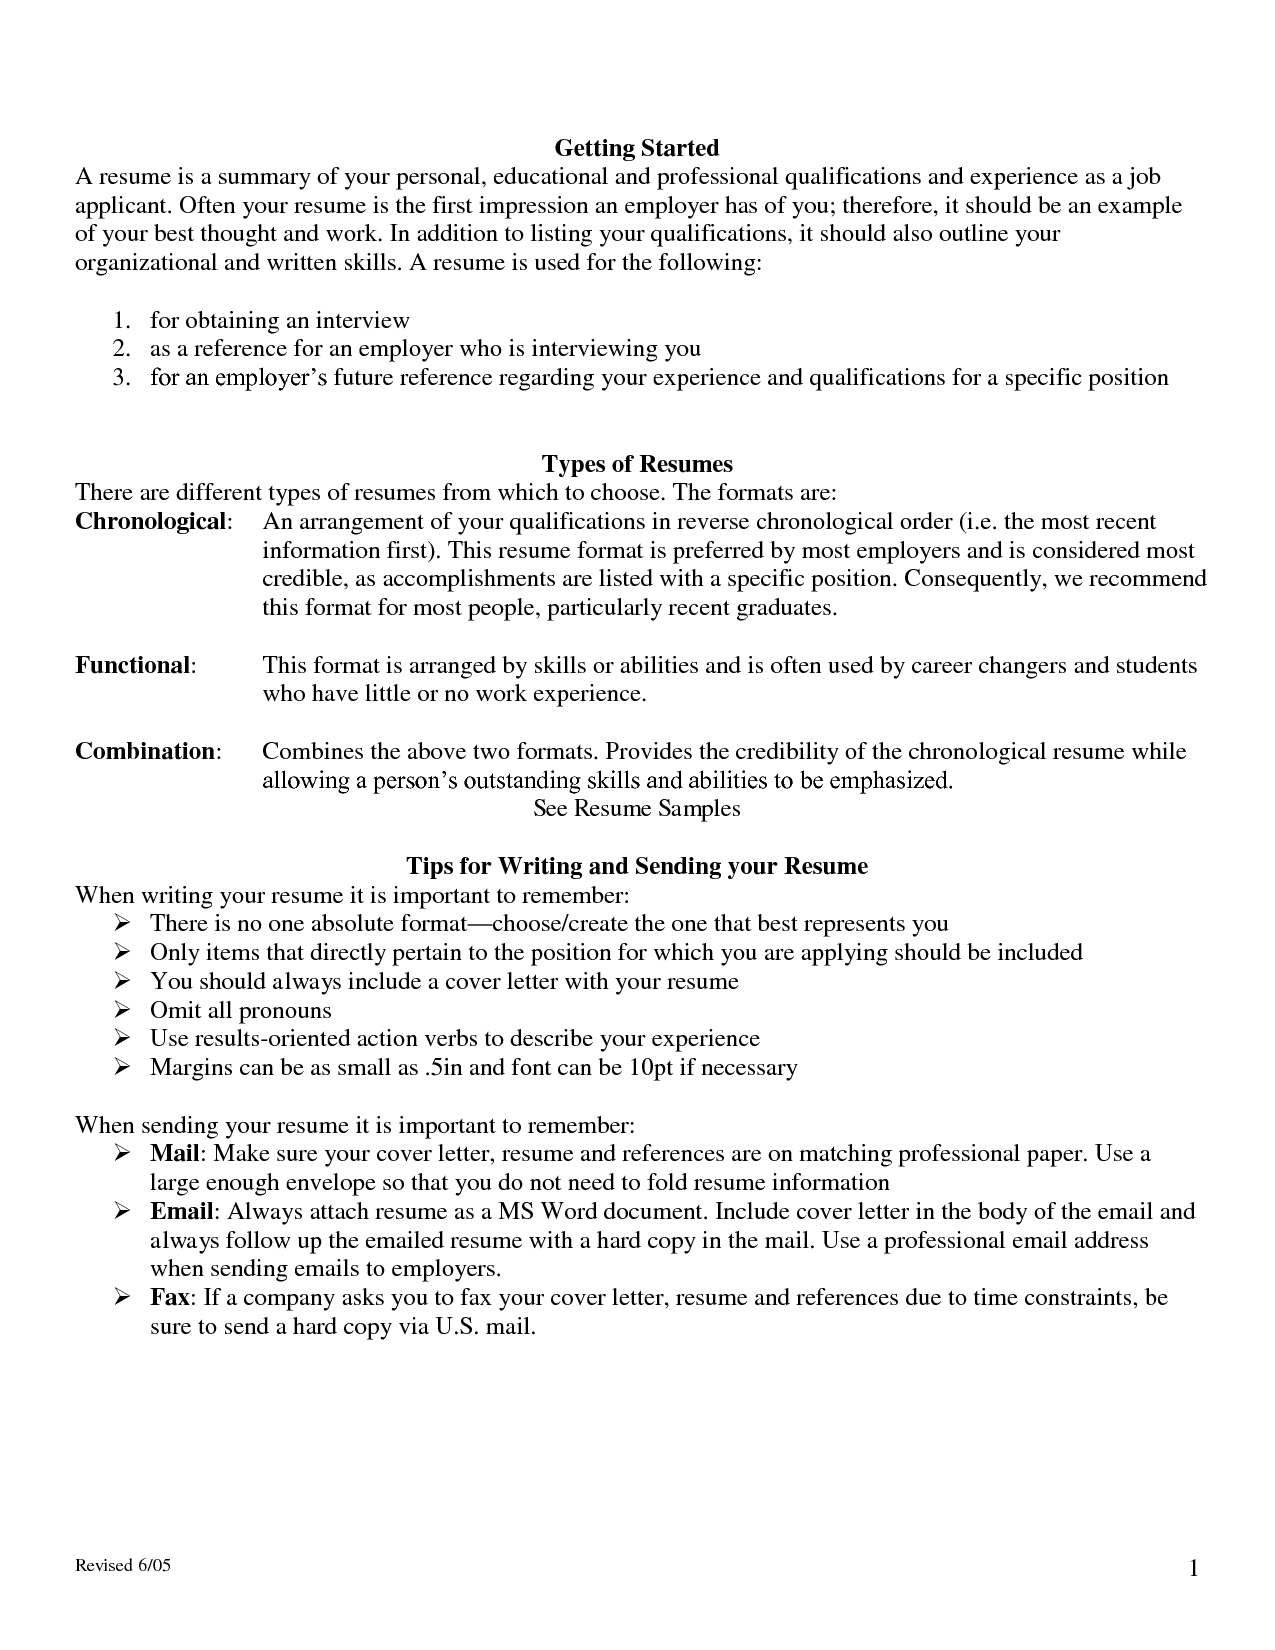 Sample Resume For Bank Teller At Entry Level Samples